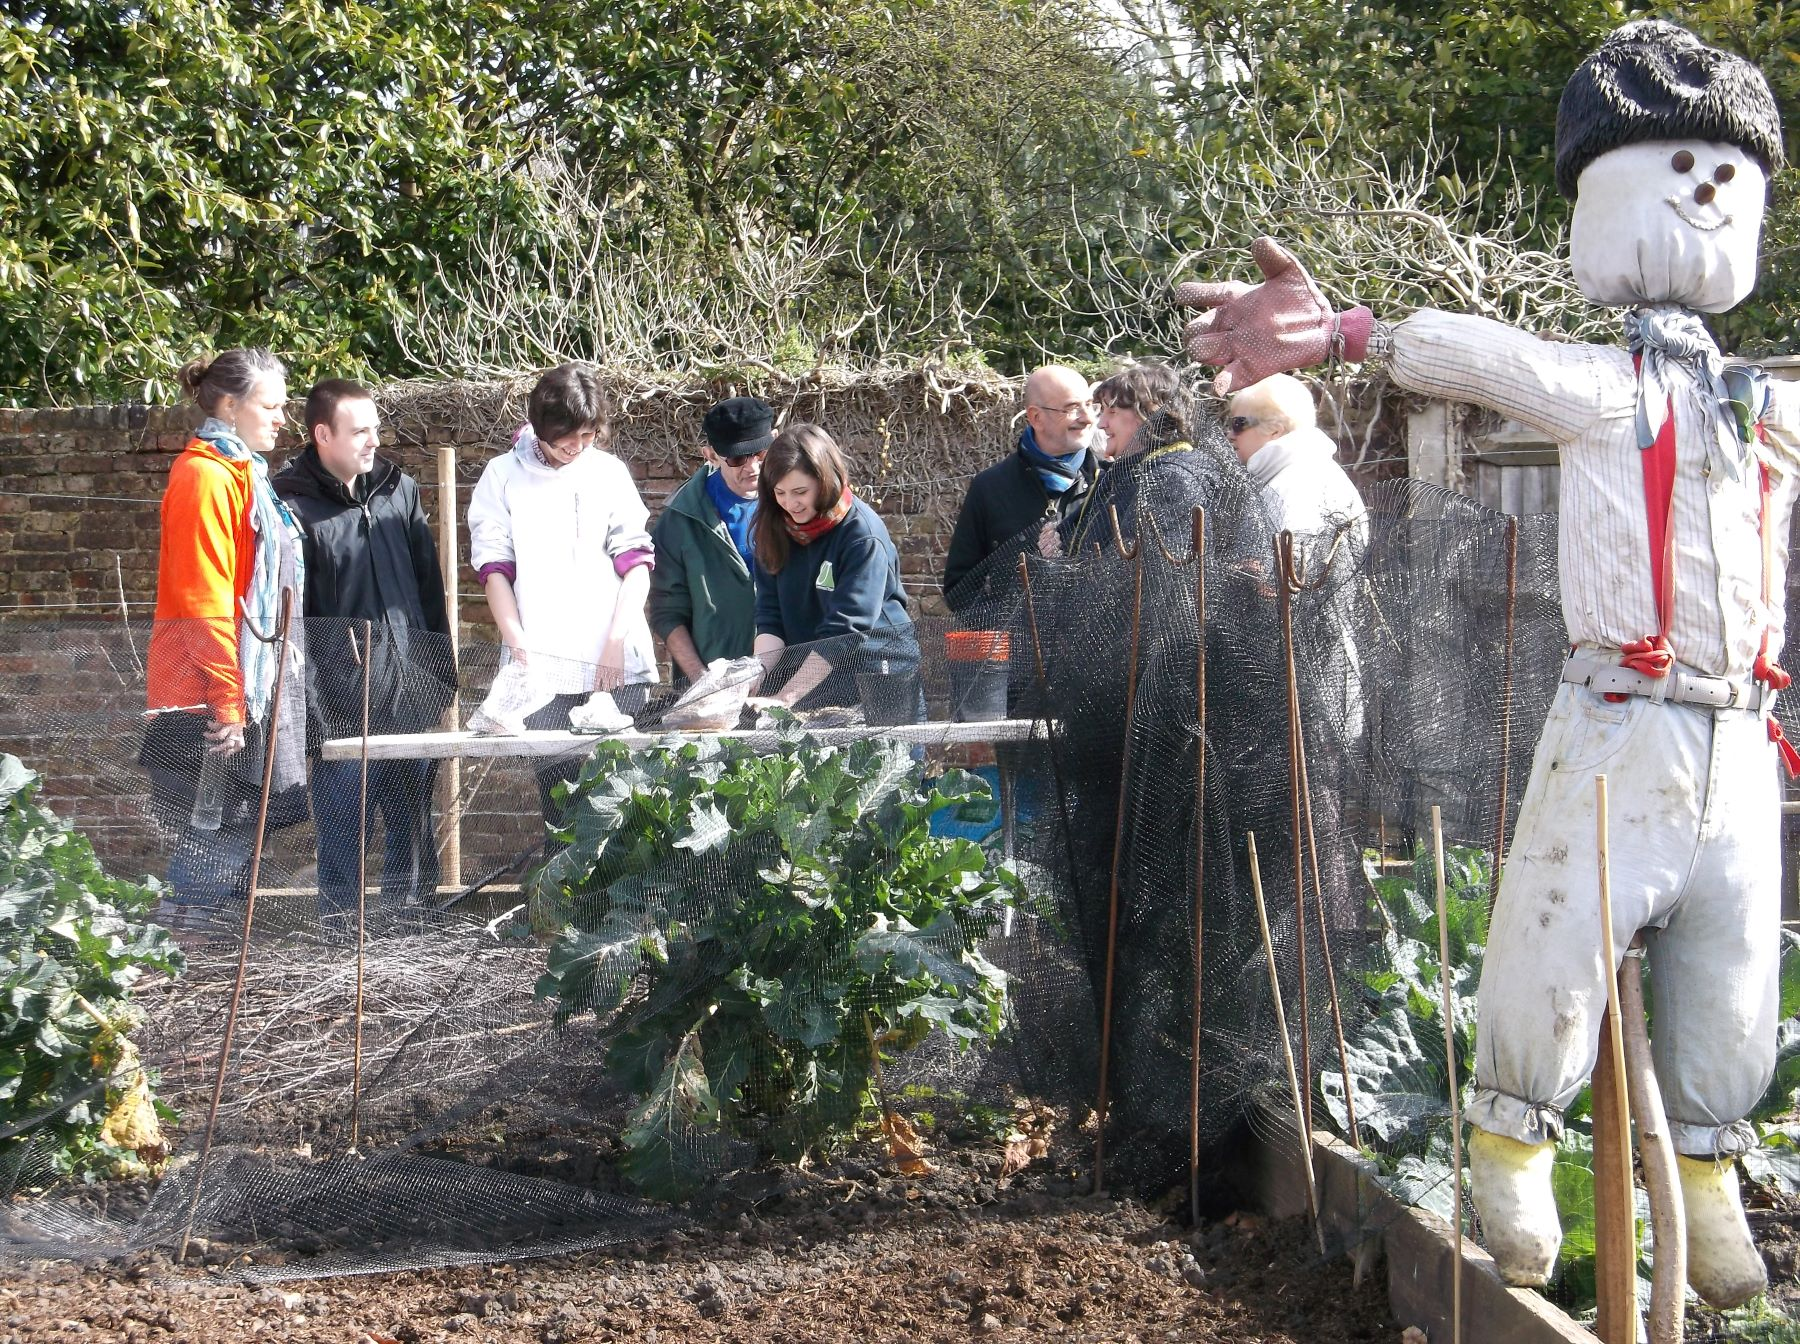 Group of volunteers in an allotment